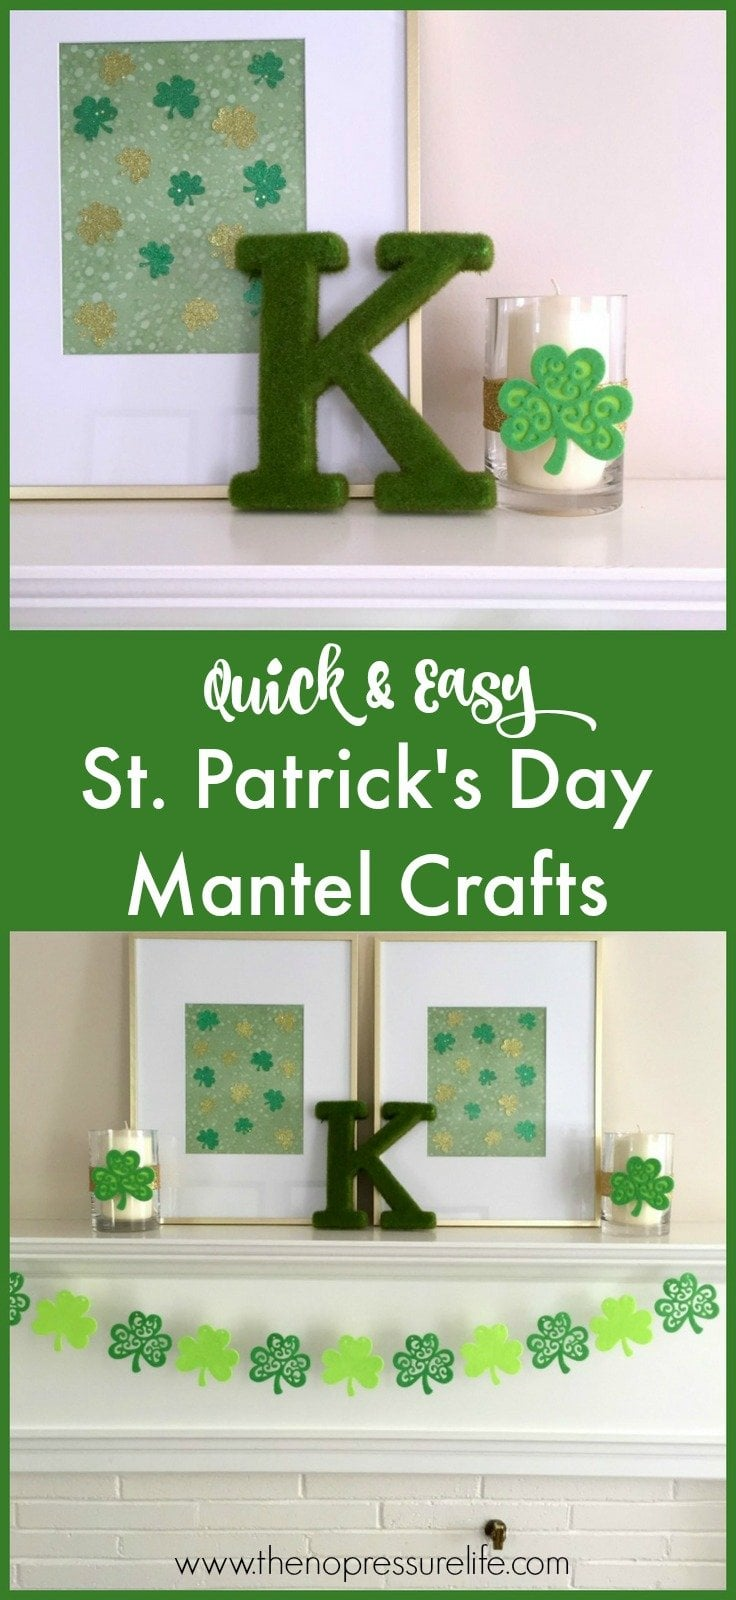 These DIY St. Patrick's Day mantel decorations are so cute